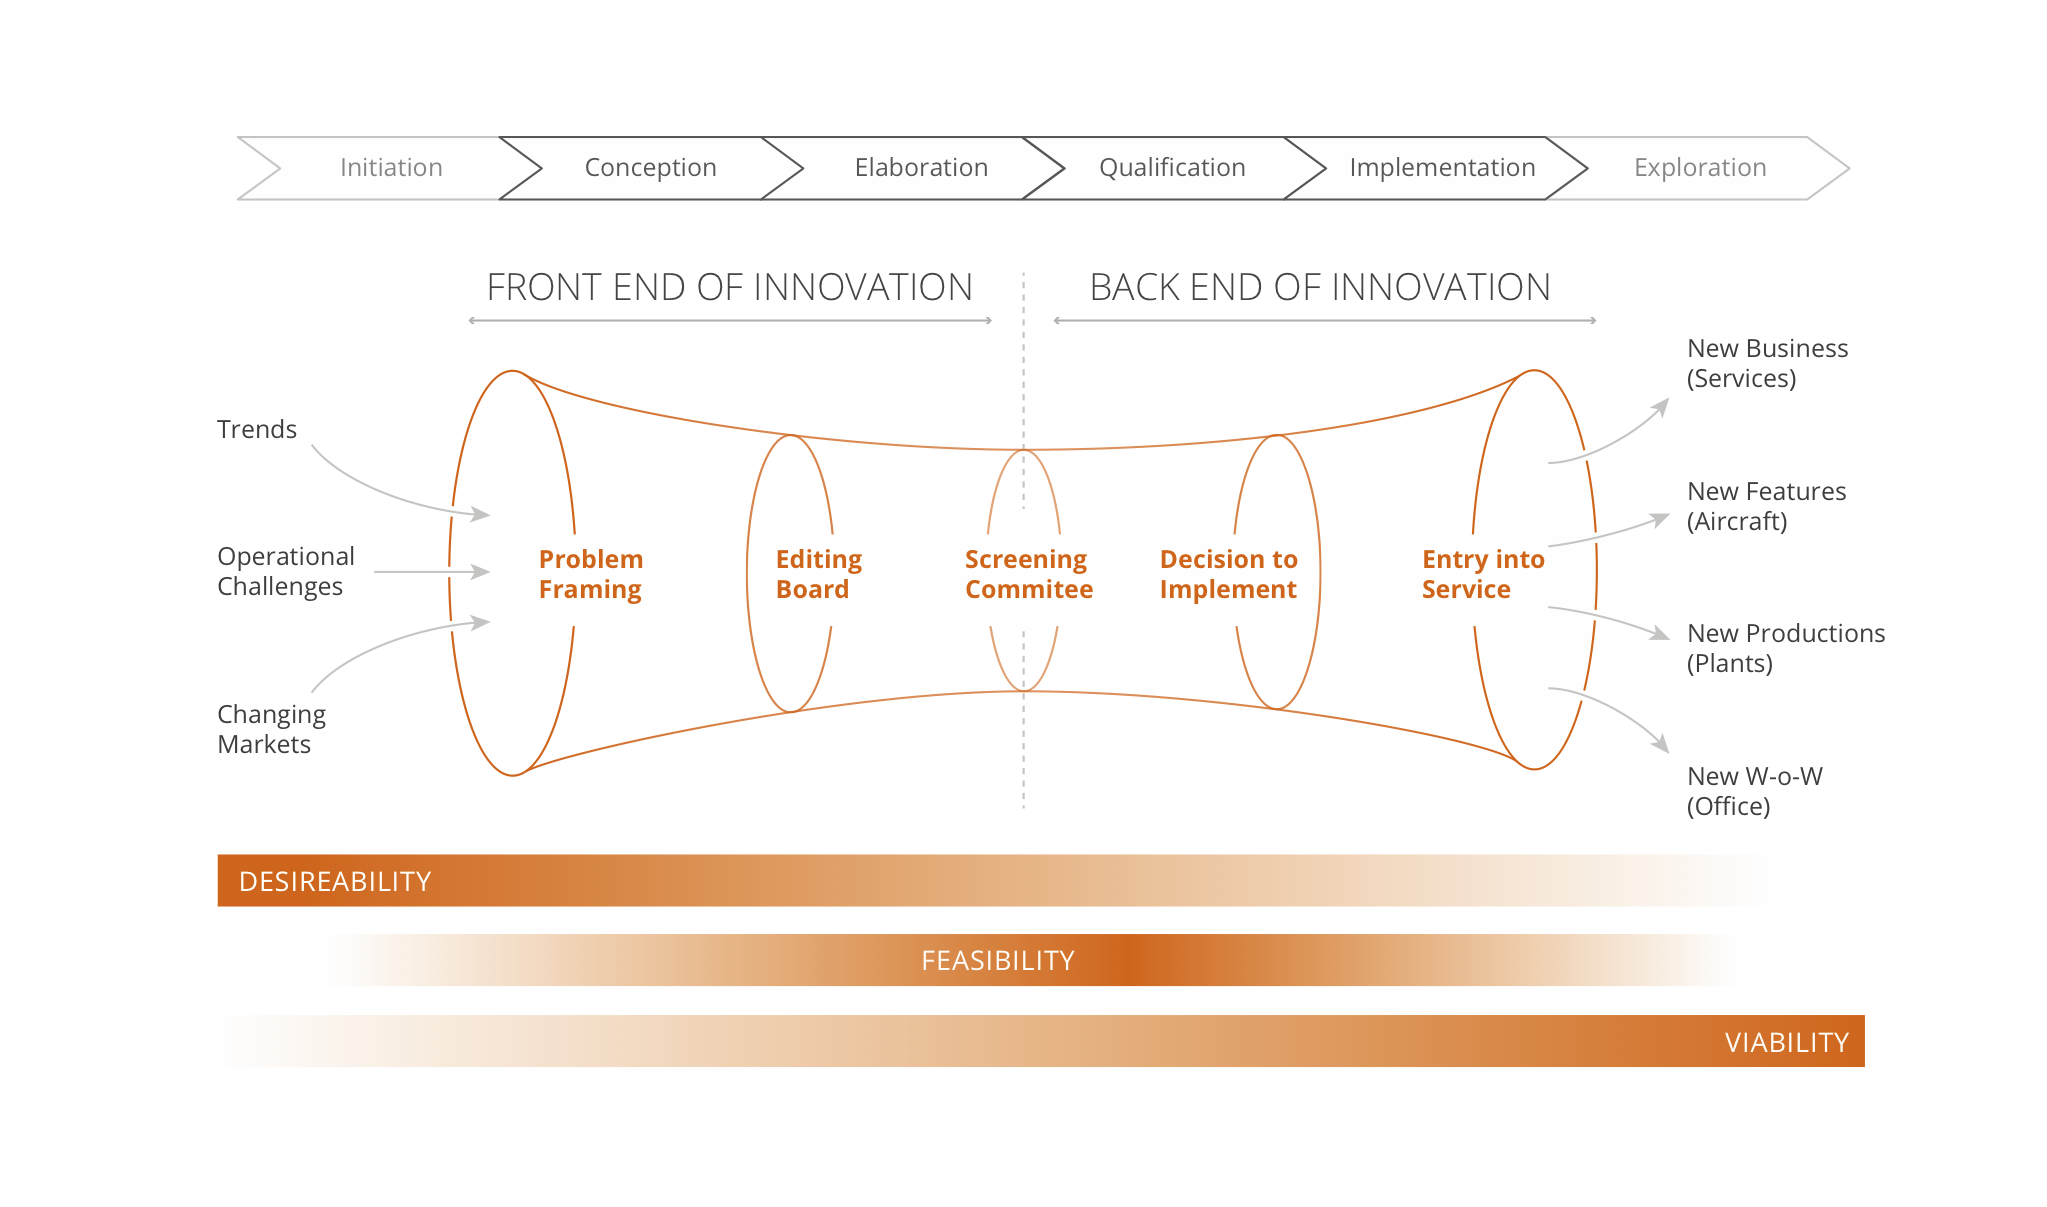 Airbus Innovation Funnel